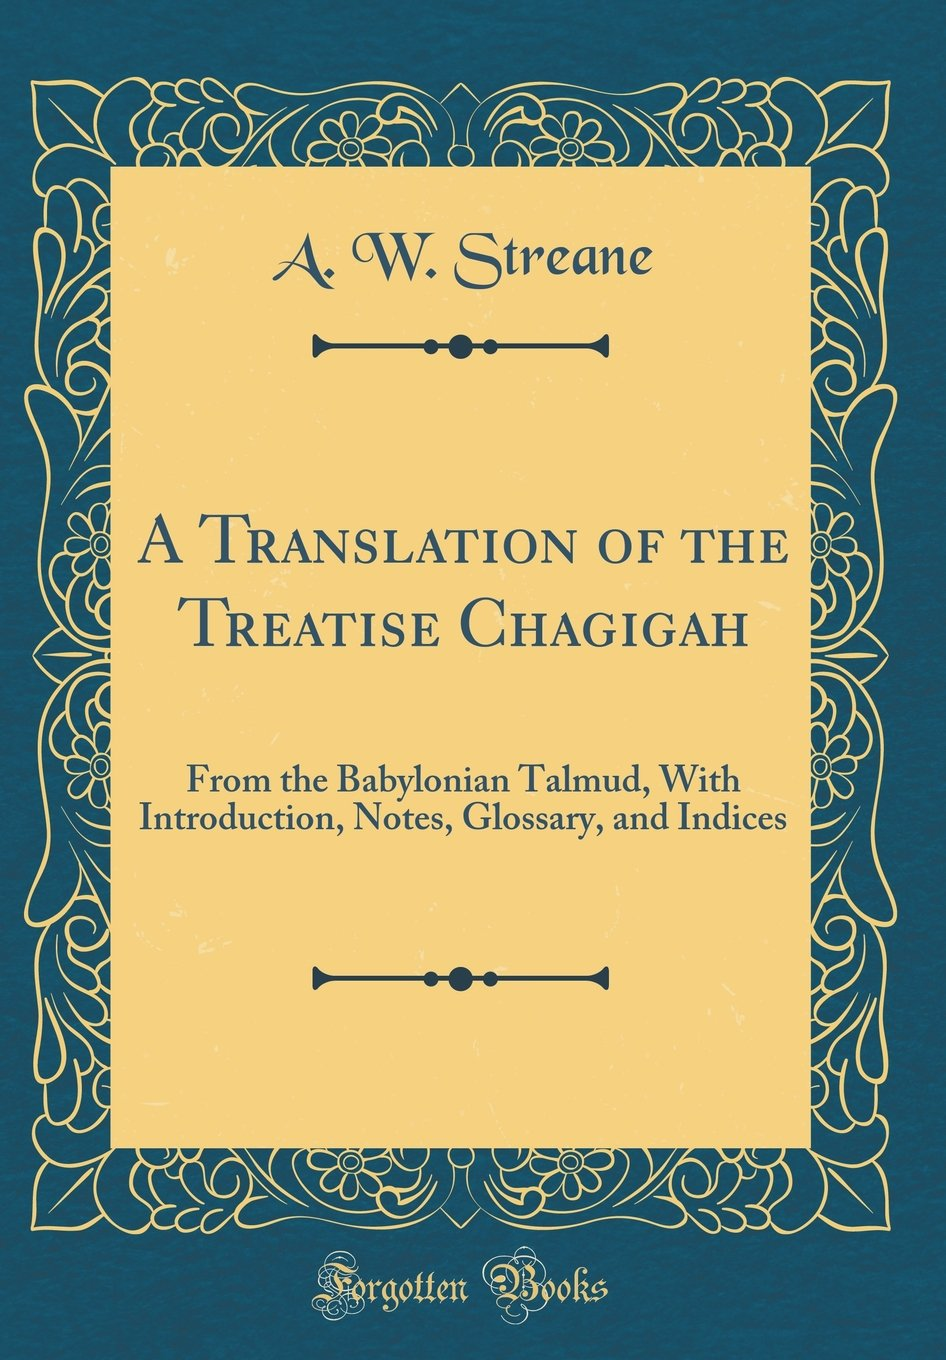 A Translation of the Treatise Chagigah: From the Babylonian Talmud, With Introduction, Notes, Glossary, and Indices (Classic Reprint) PDF